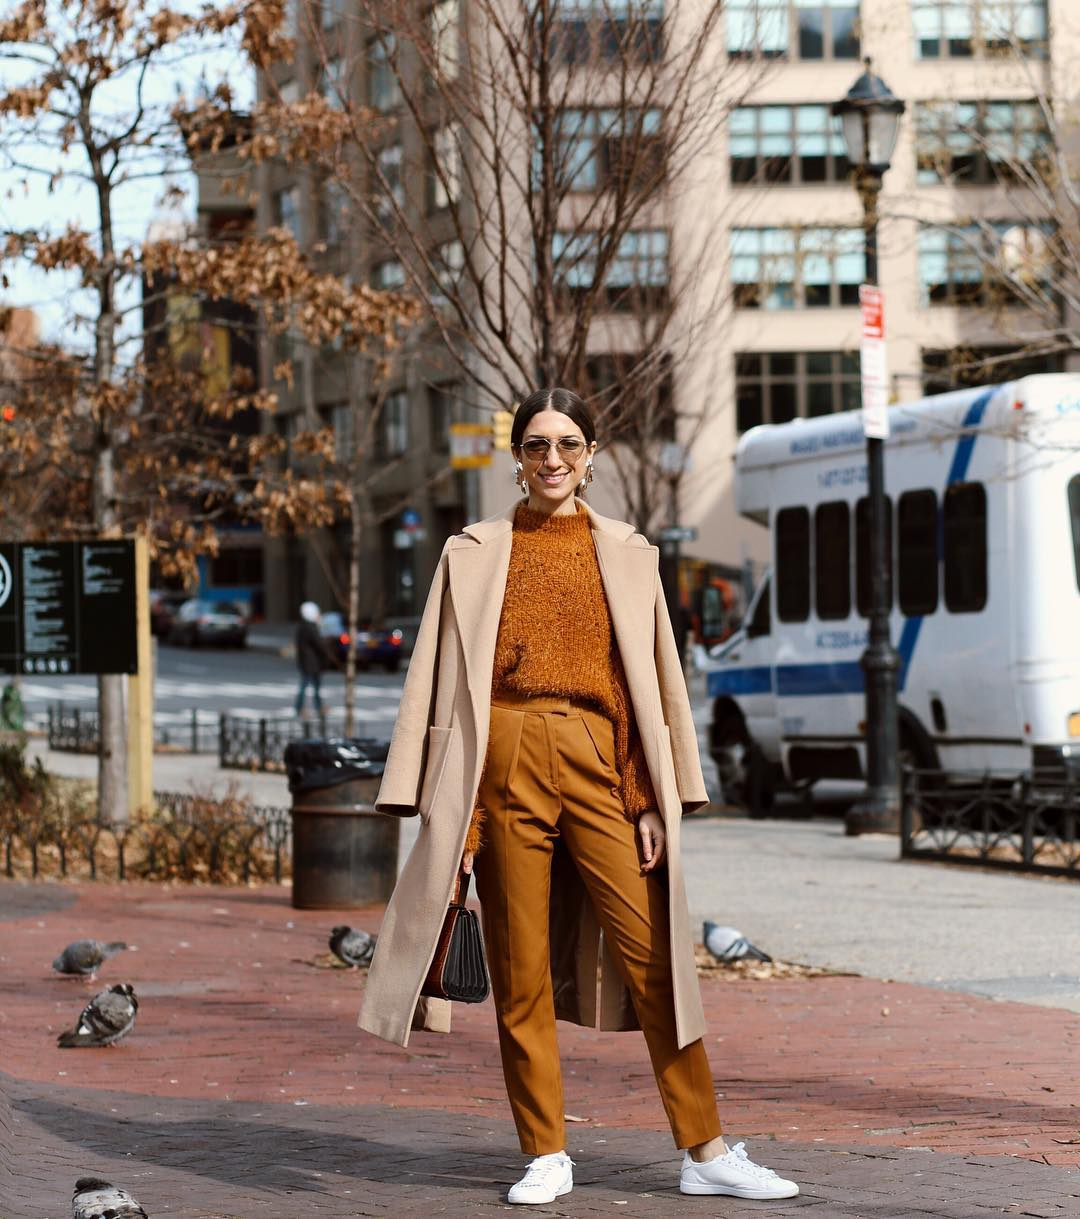 This Street Style Outfit Is so on Trend for Fall 2019